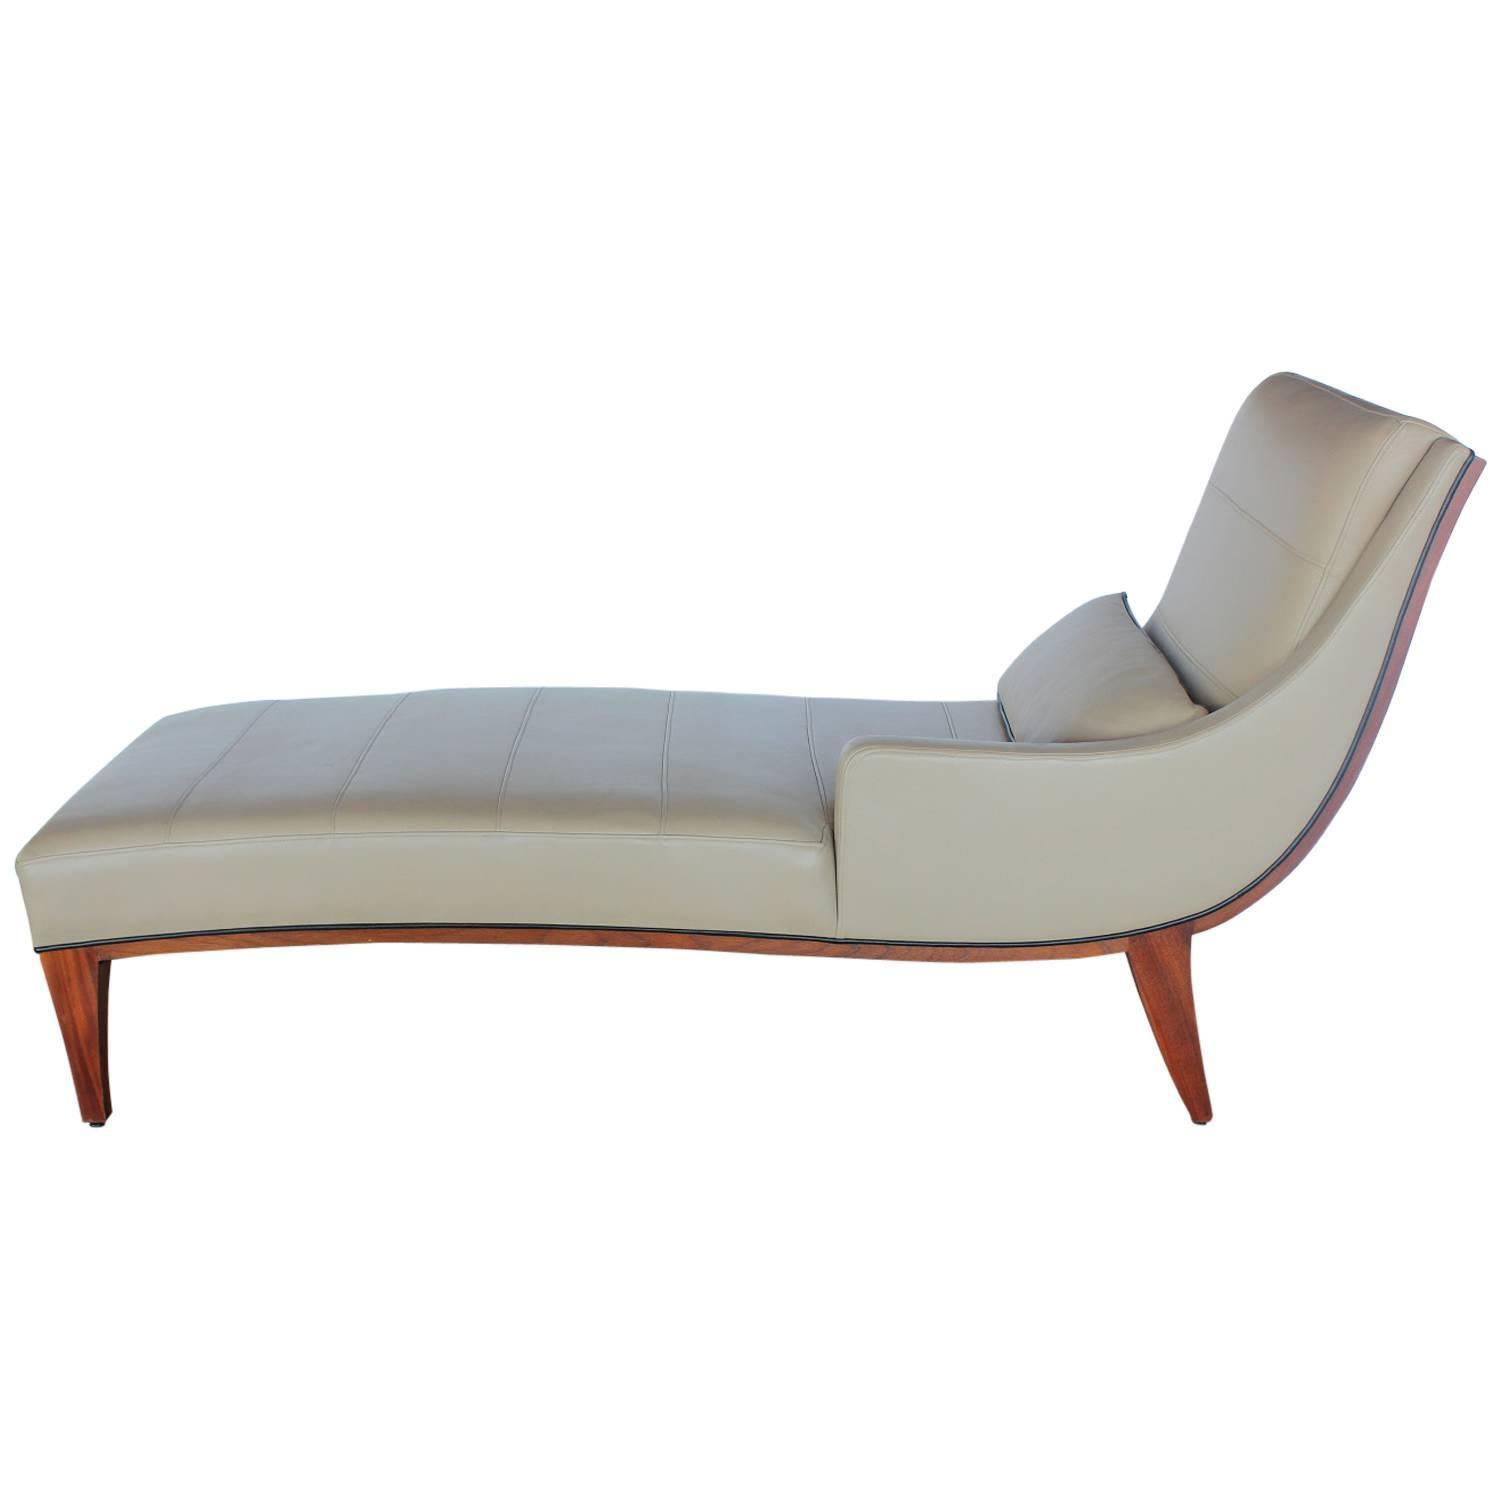 106 modern leather chaise longue le corbusier chaise for Chaise longue moderne